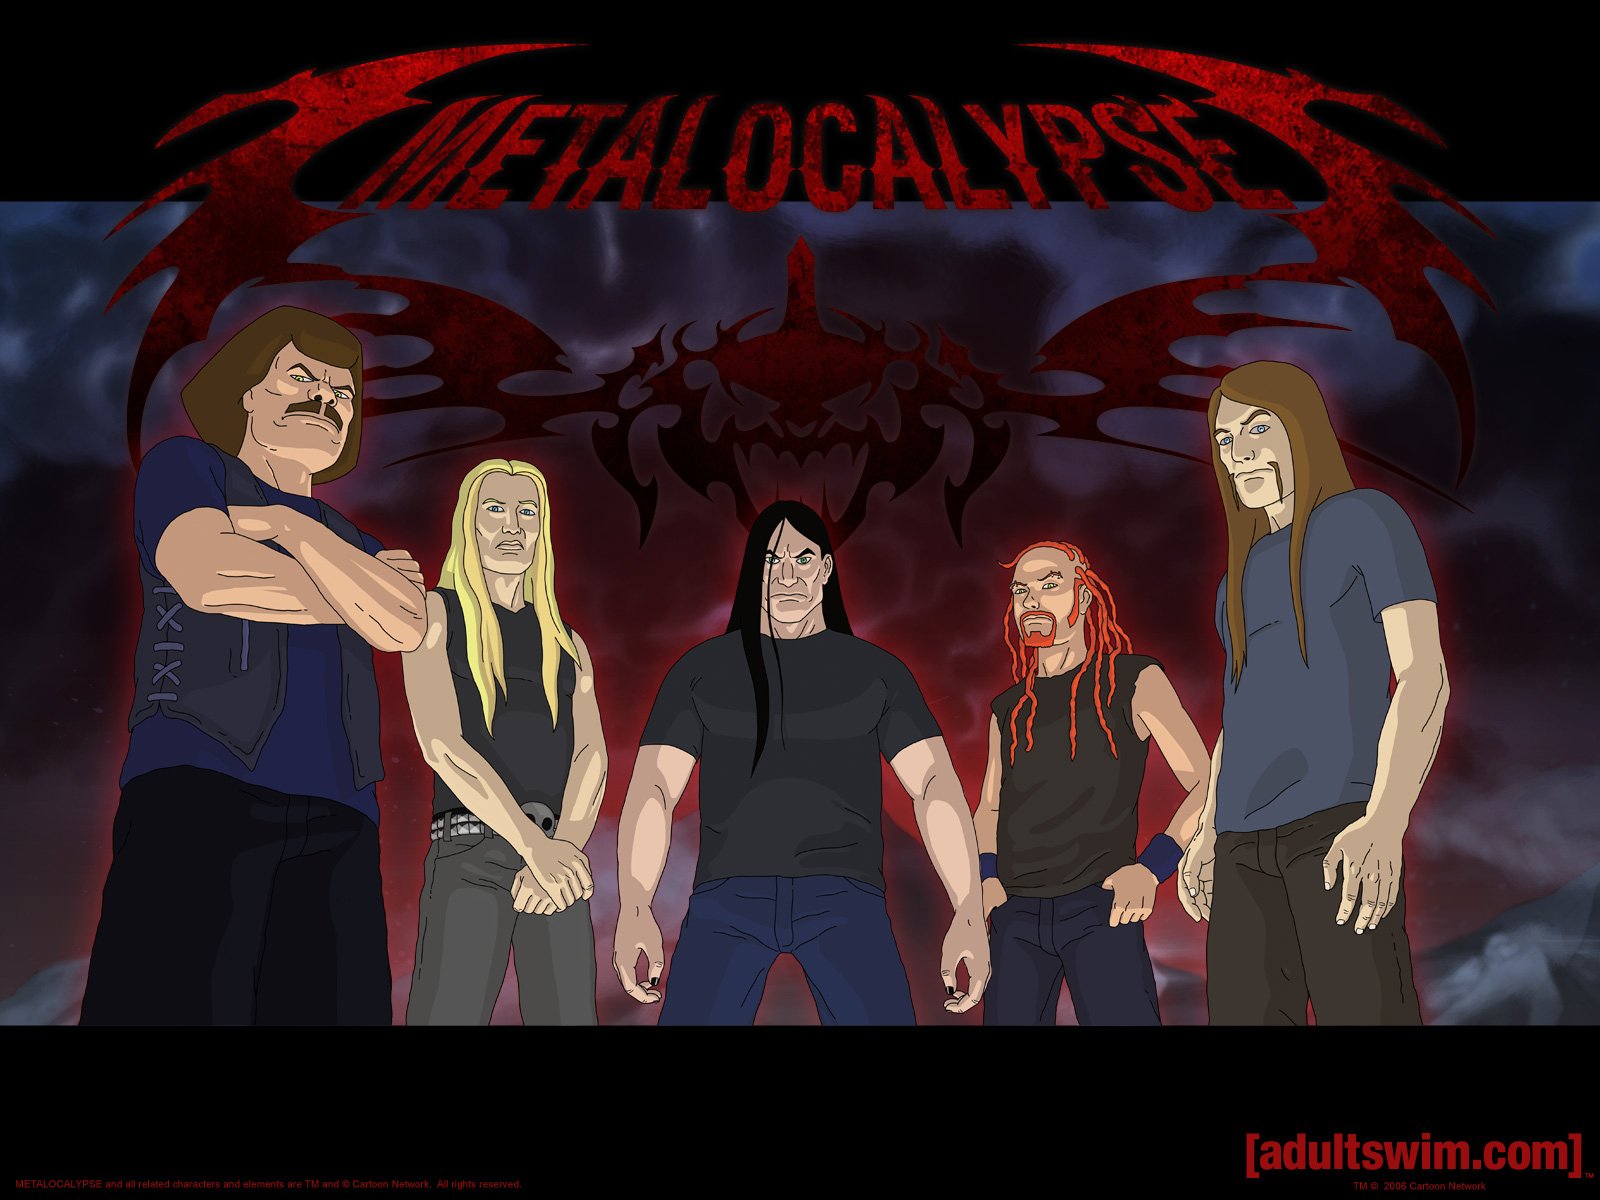 http://www.diefordethklok.ru/downloads/wallpapers/5/2_1600.jpg